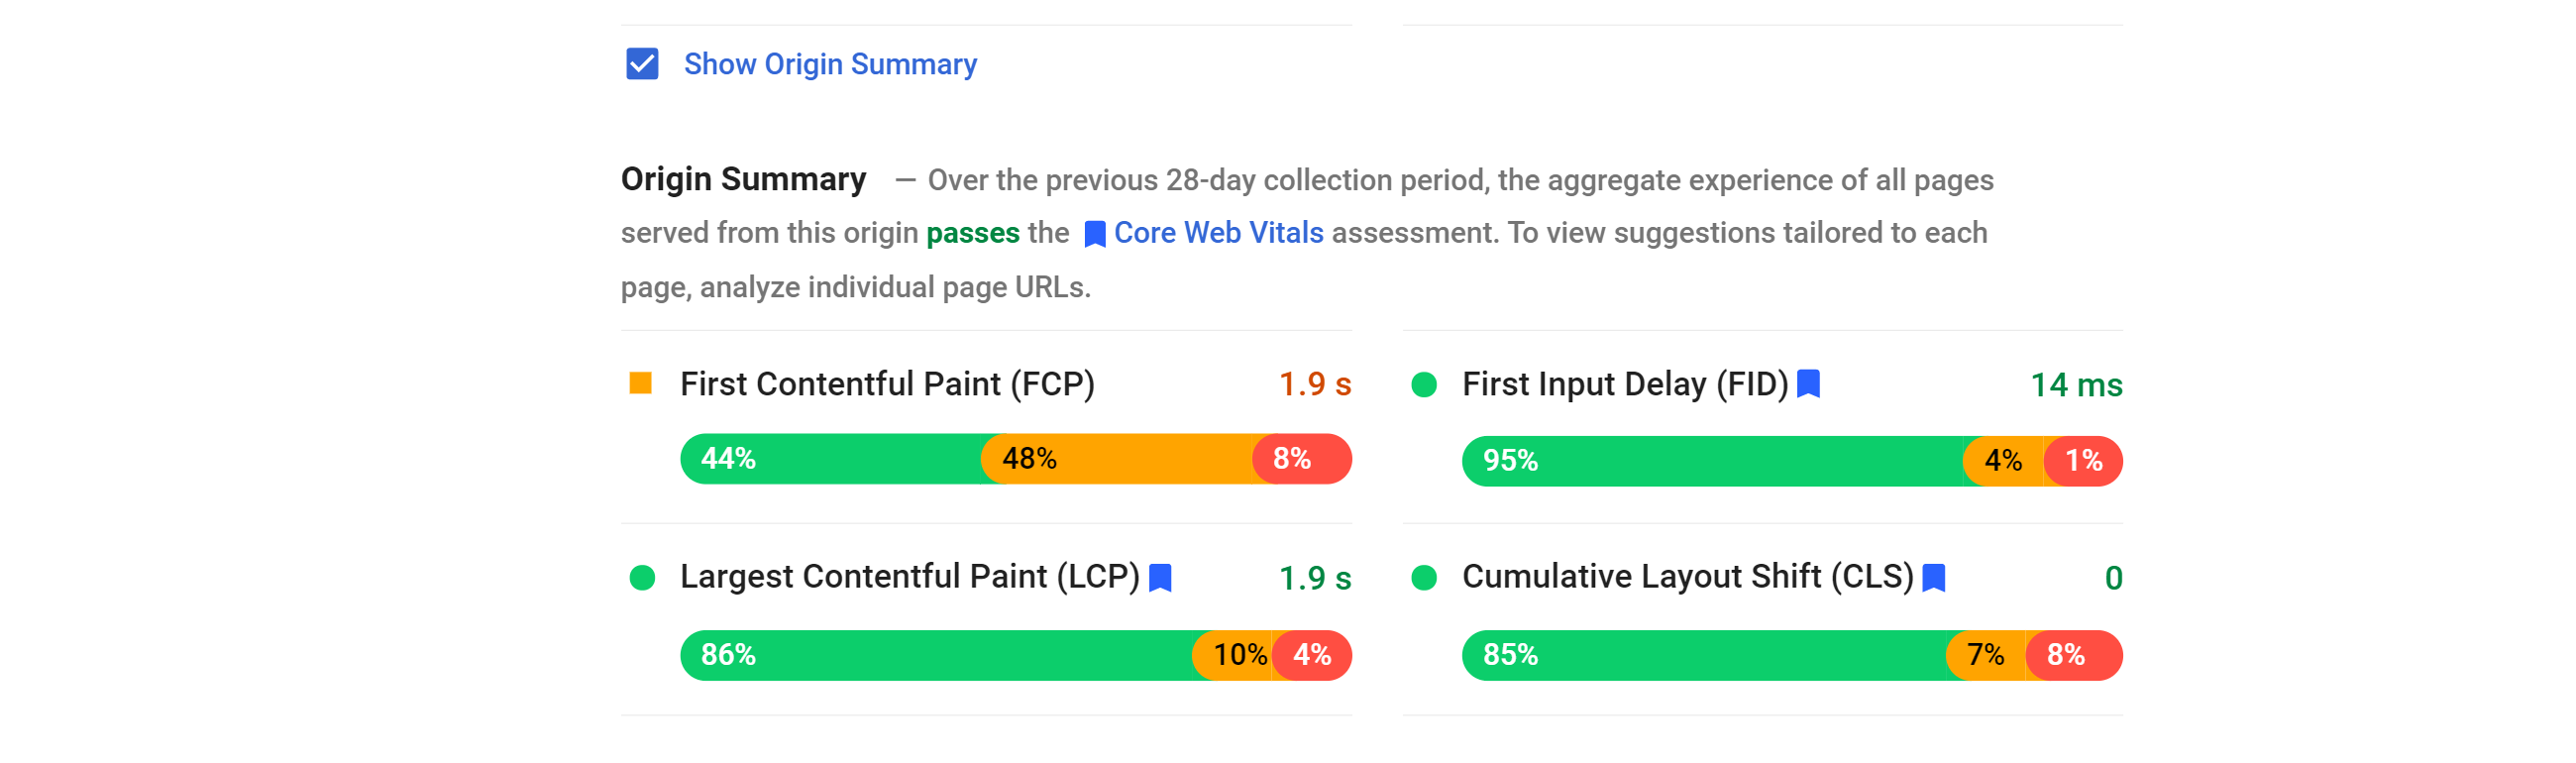 Origin Summary results shown on the PageSpeed tool.